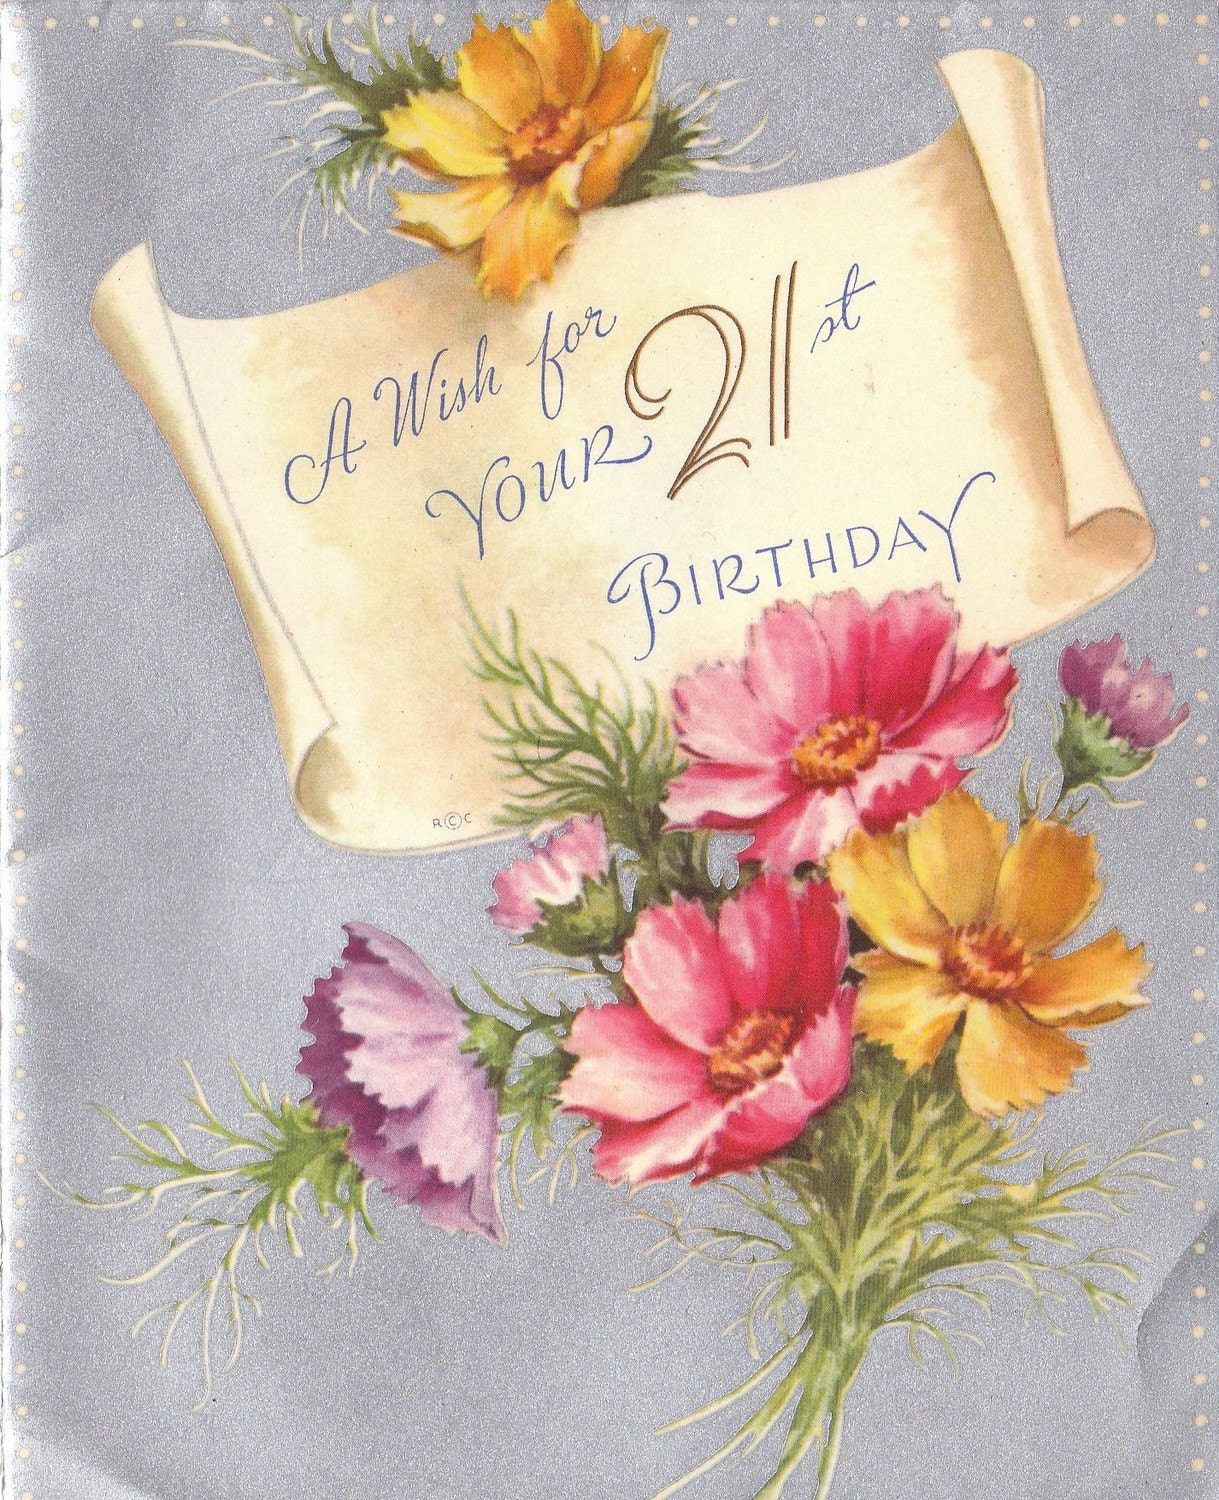 Items Similar To A Wish For Your 21st Birthday- 1940s